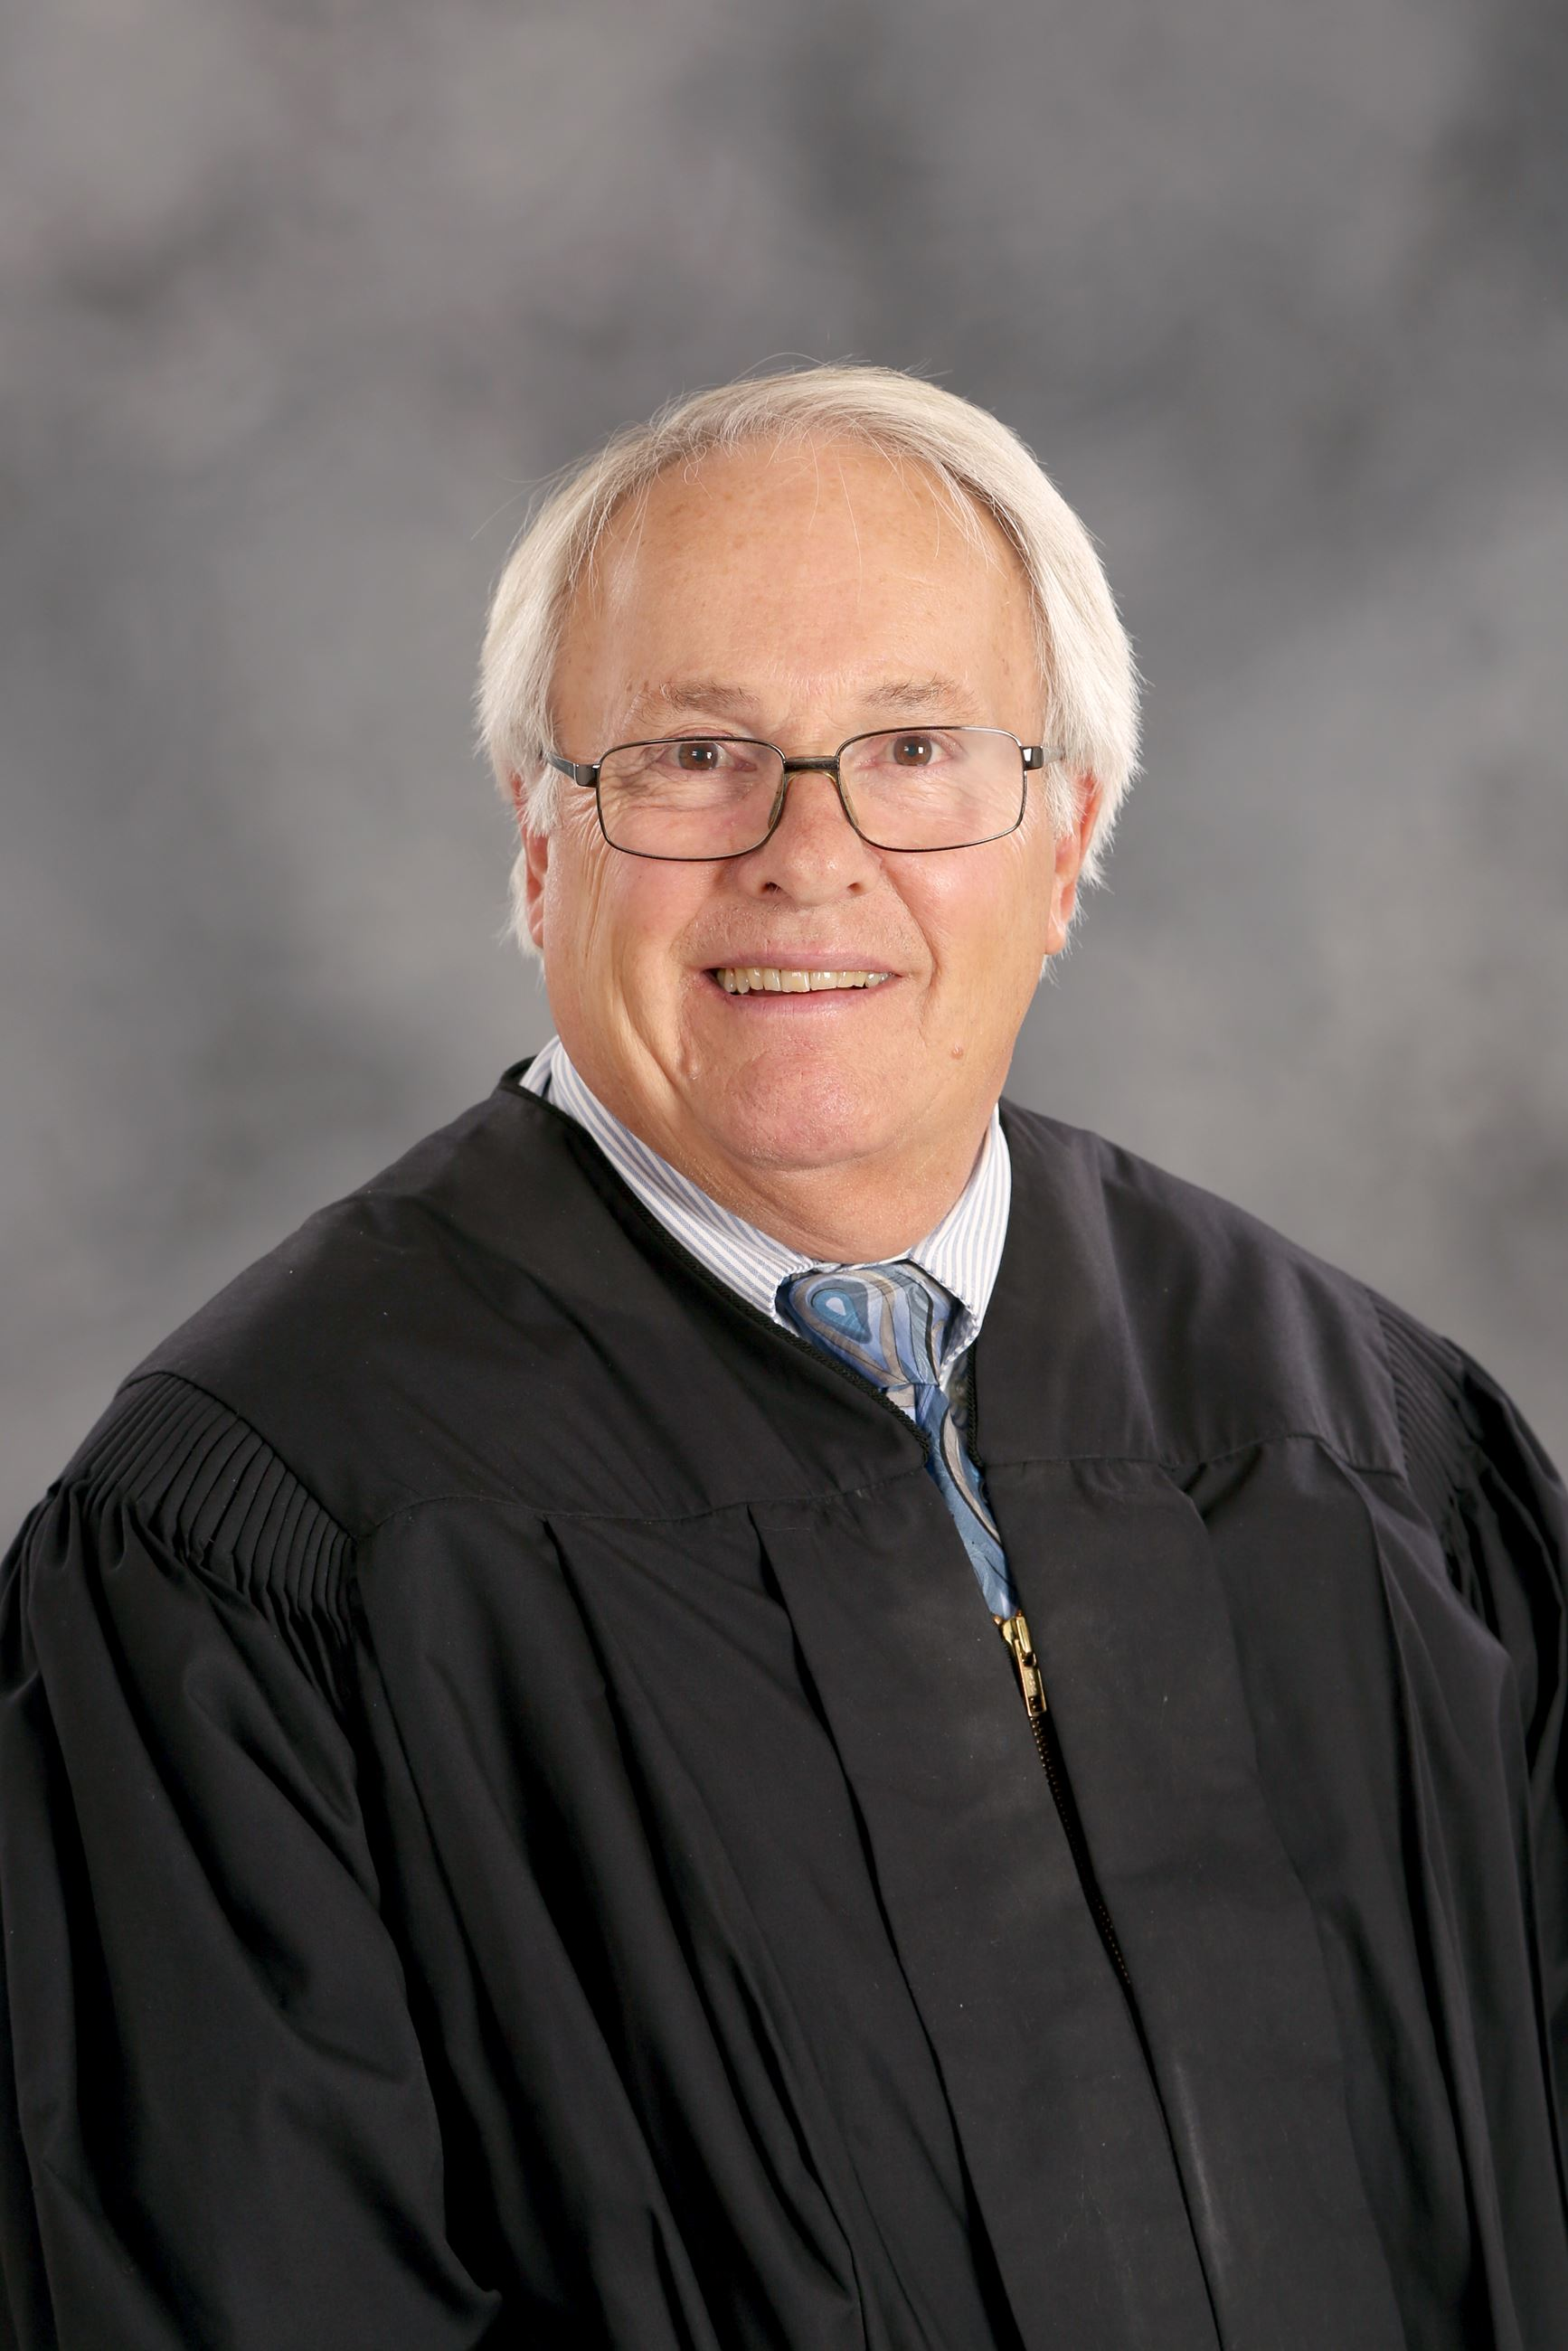 Judge Harold F. Closz